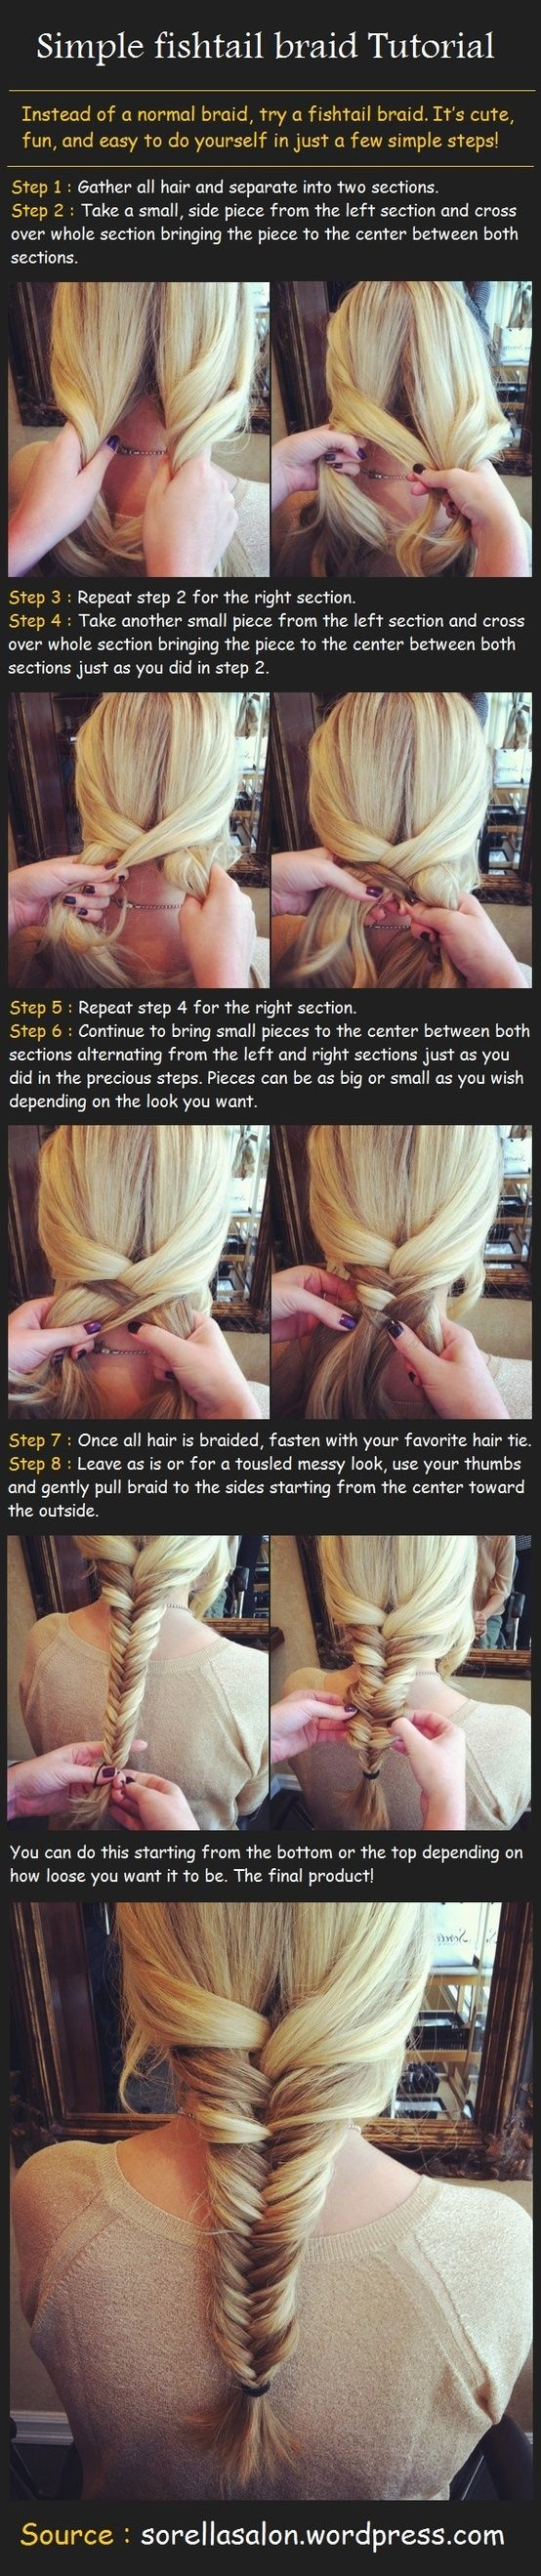 I use to love it when my mom would do this to my hair.